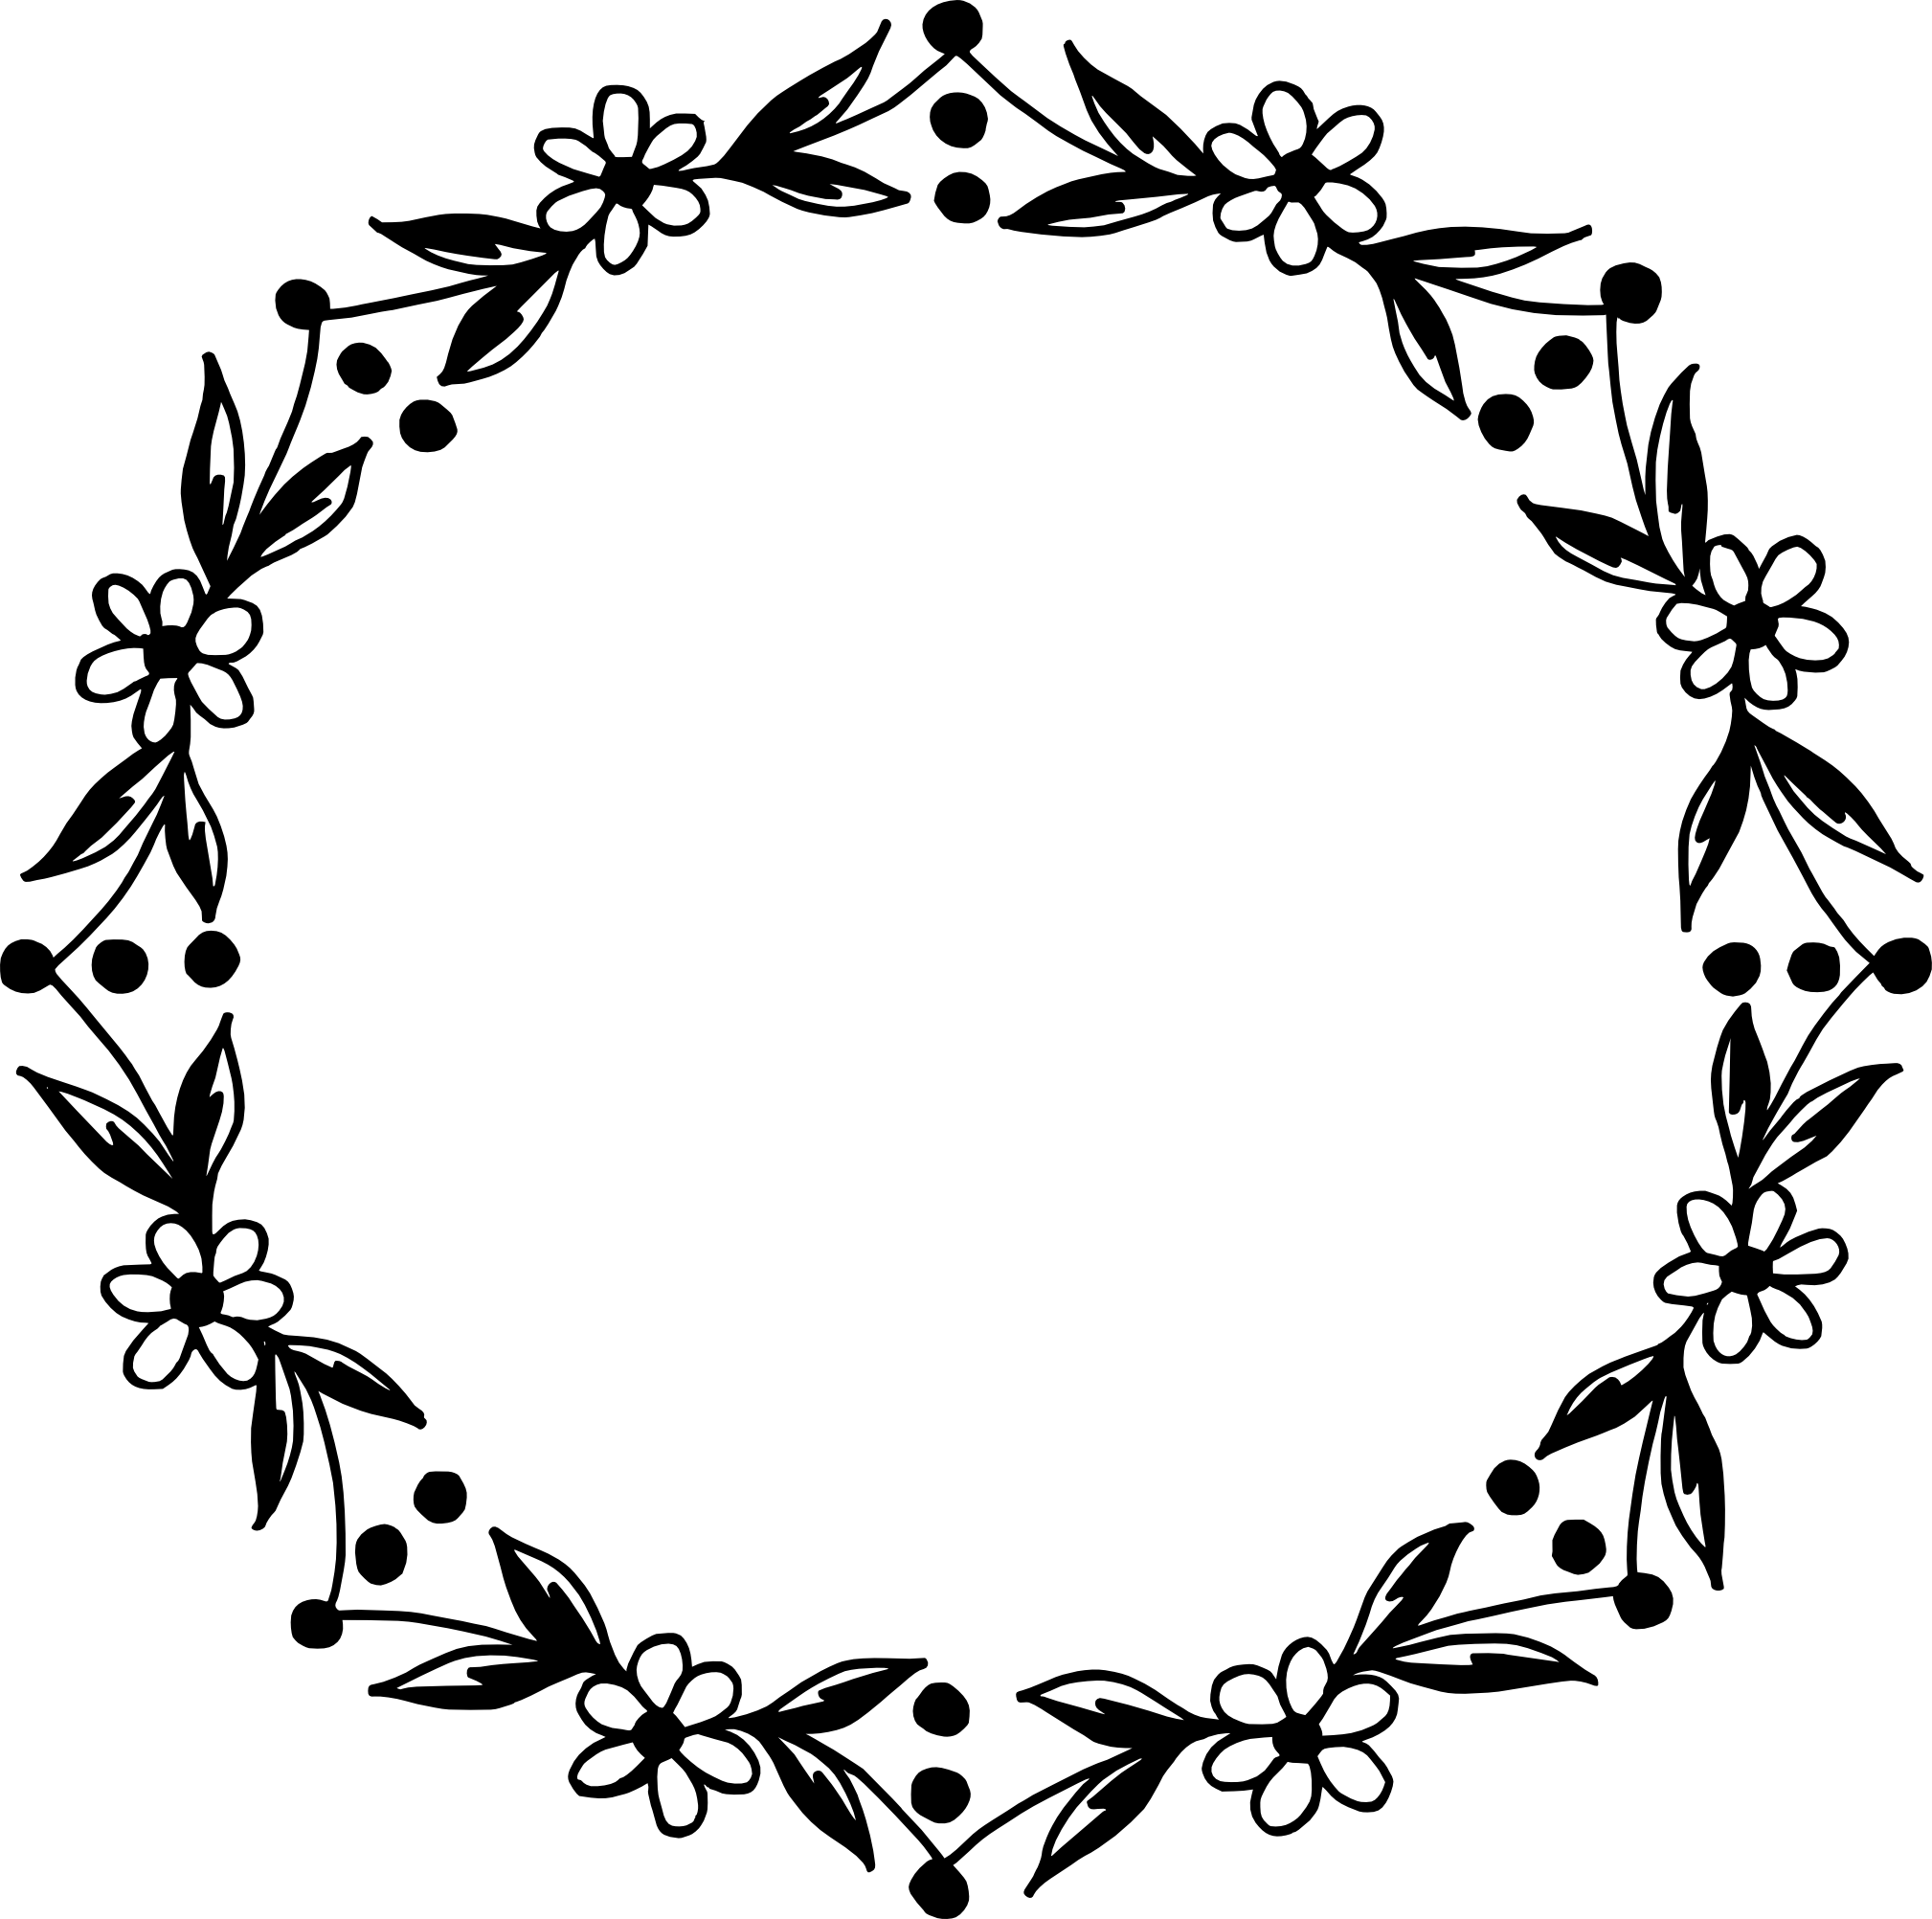 Decor vector circle. Floral frame png